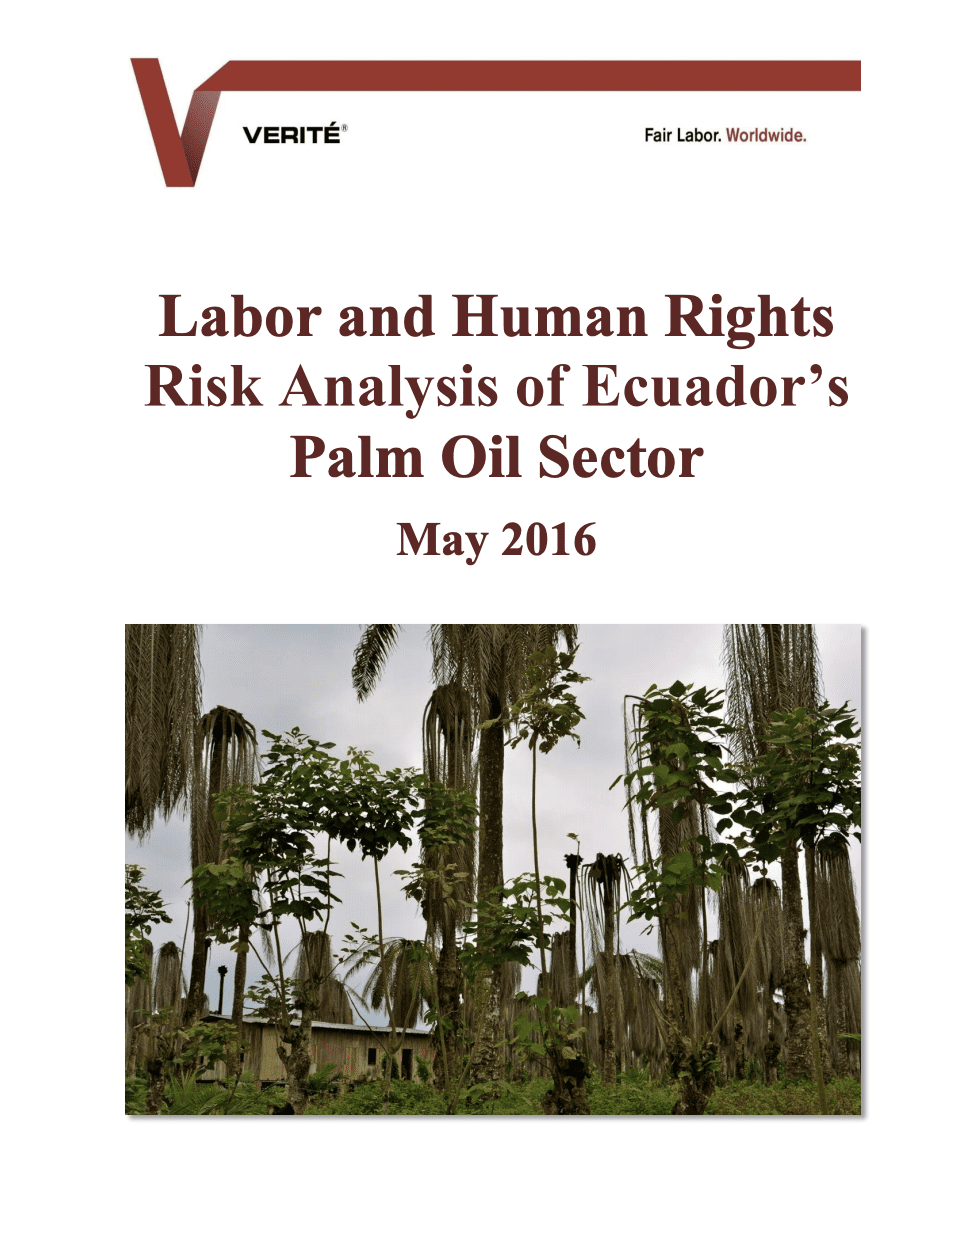 Labor and Human Rights Risk Analysis of Ecuador's Palm Oil Sector